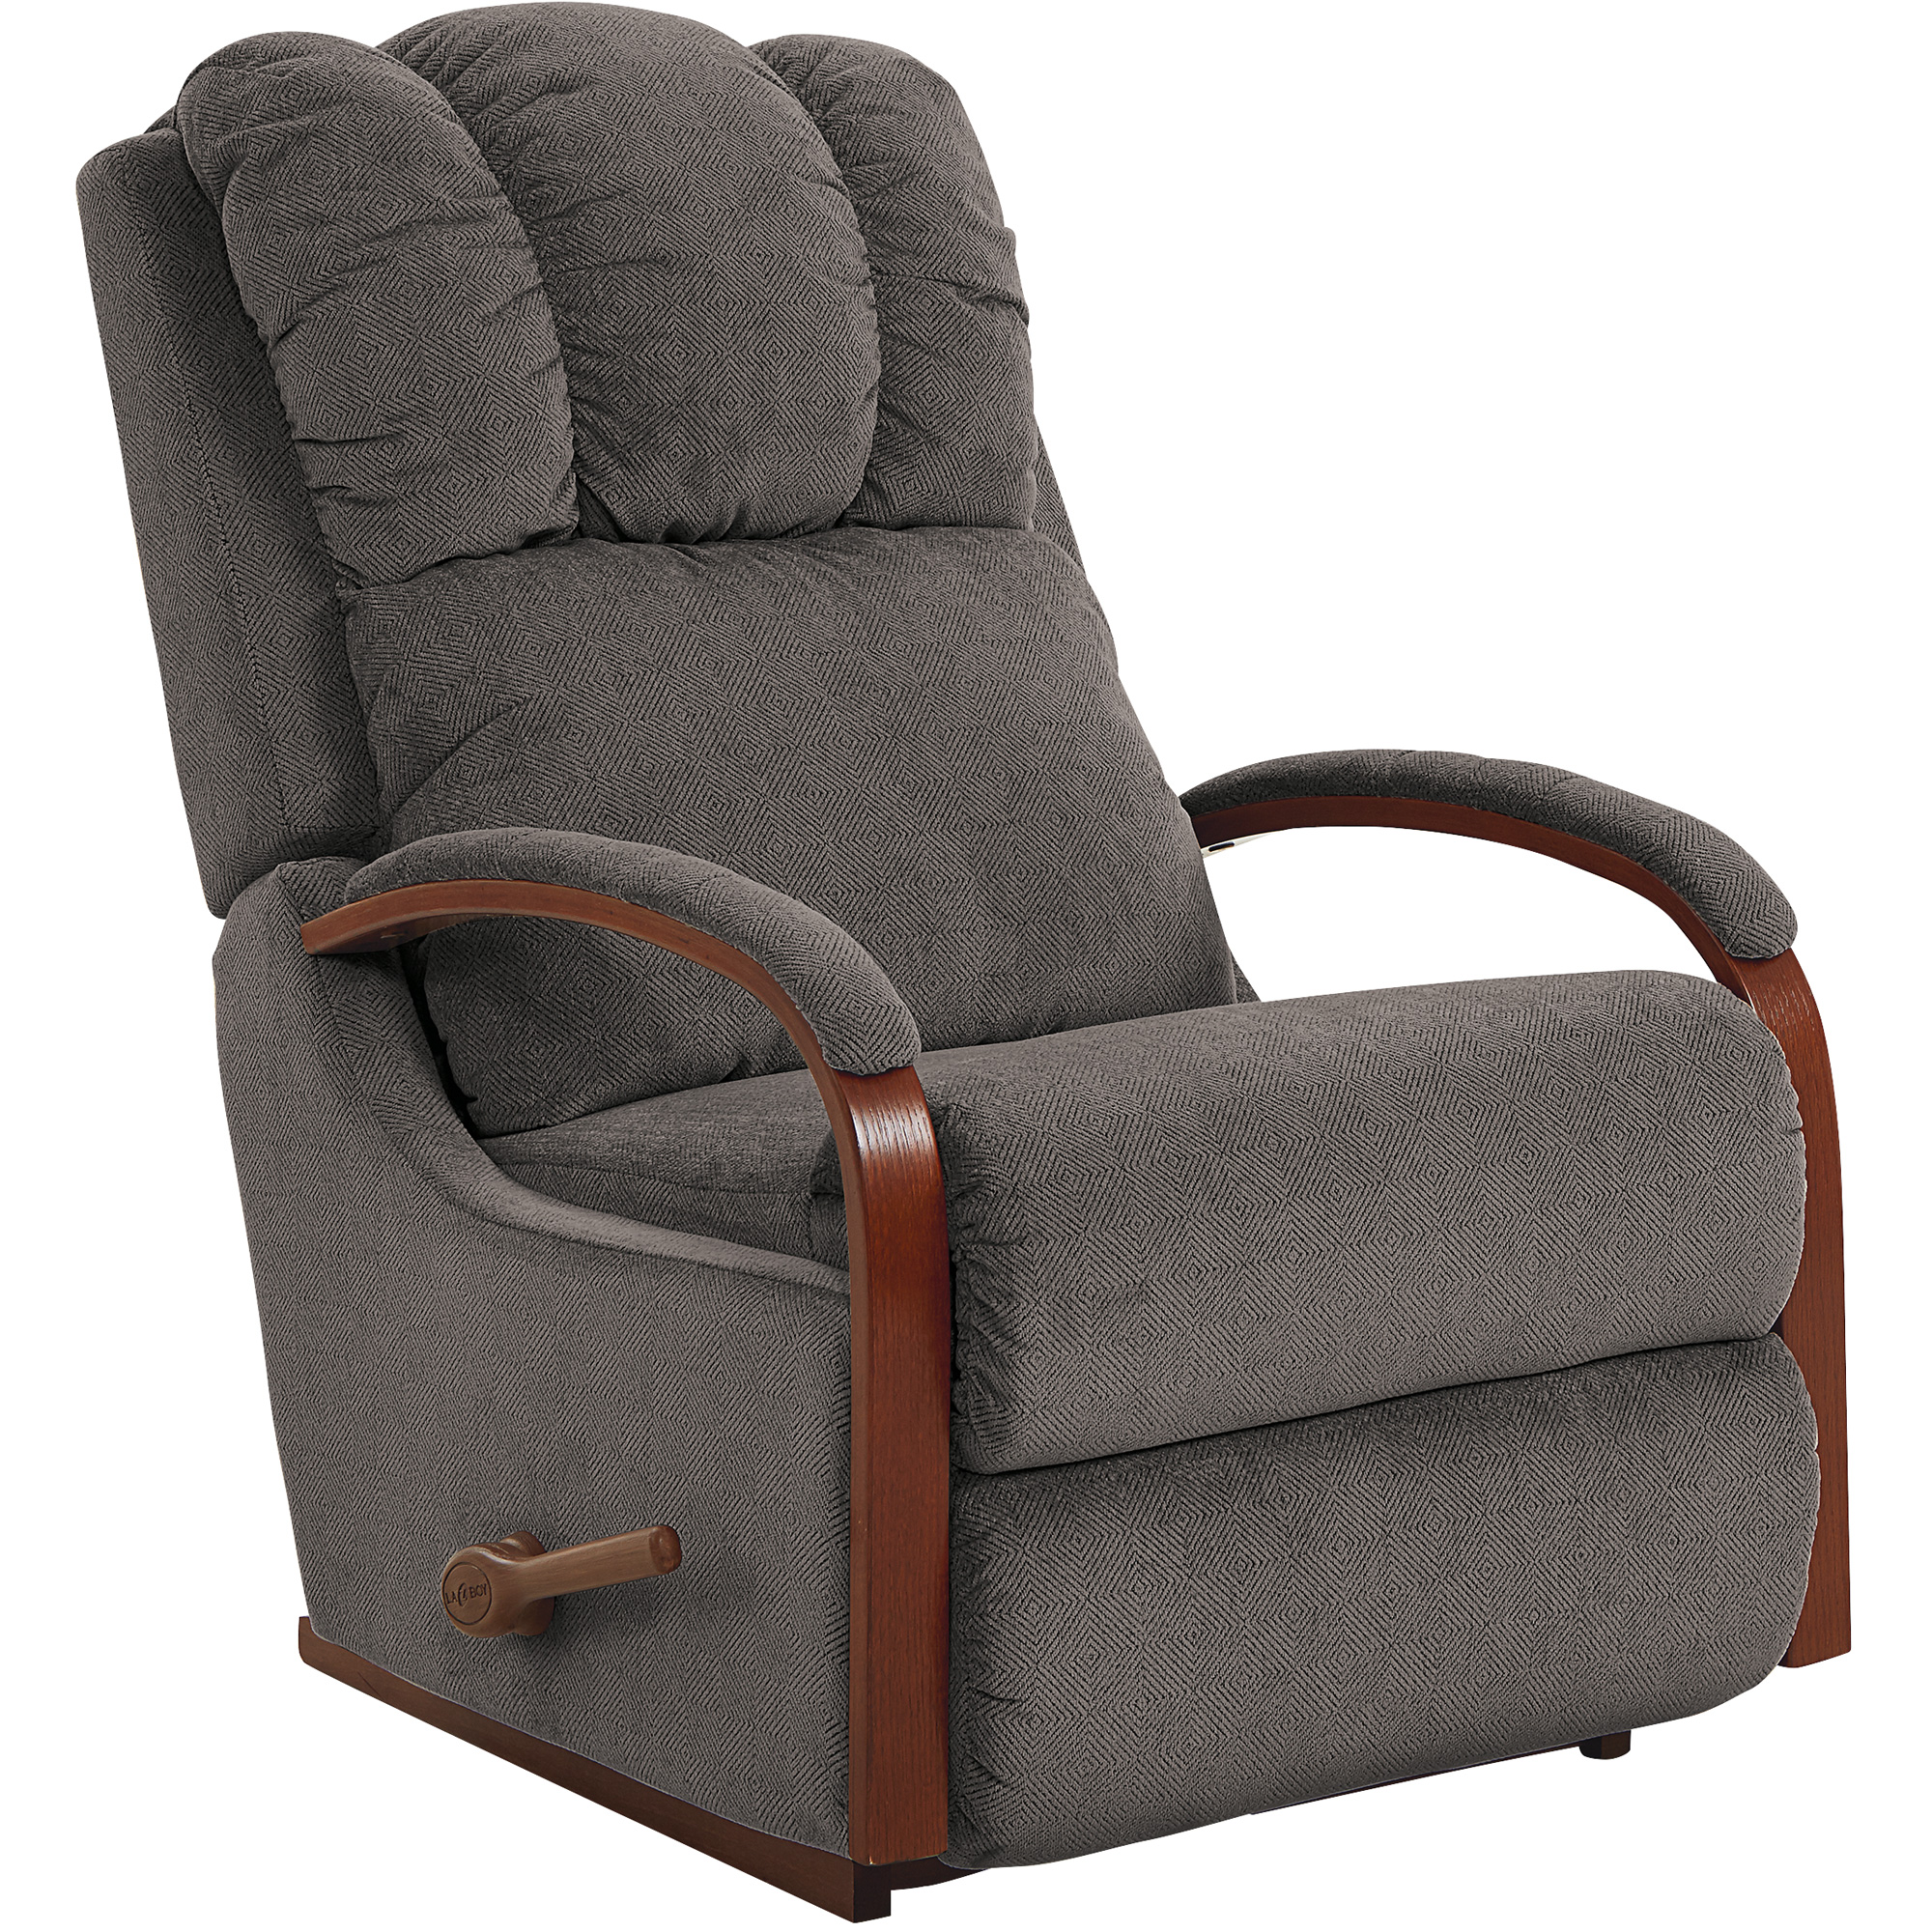 La-Z-Boy | Harbor Town Granite Rocker Recliner Chair